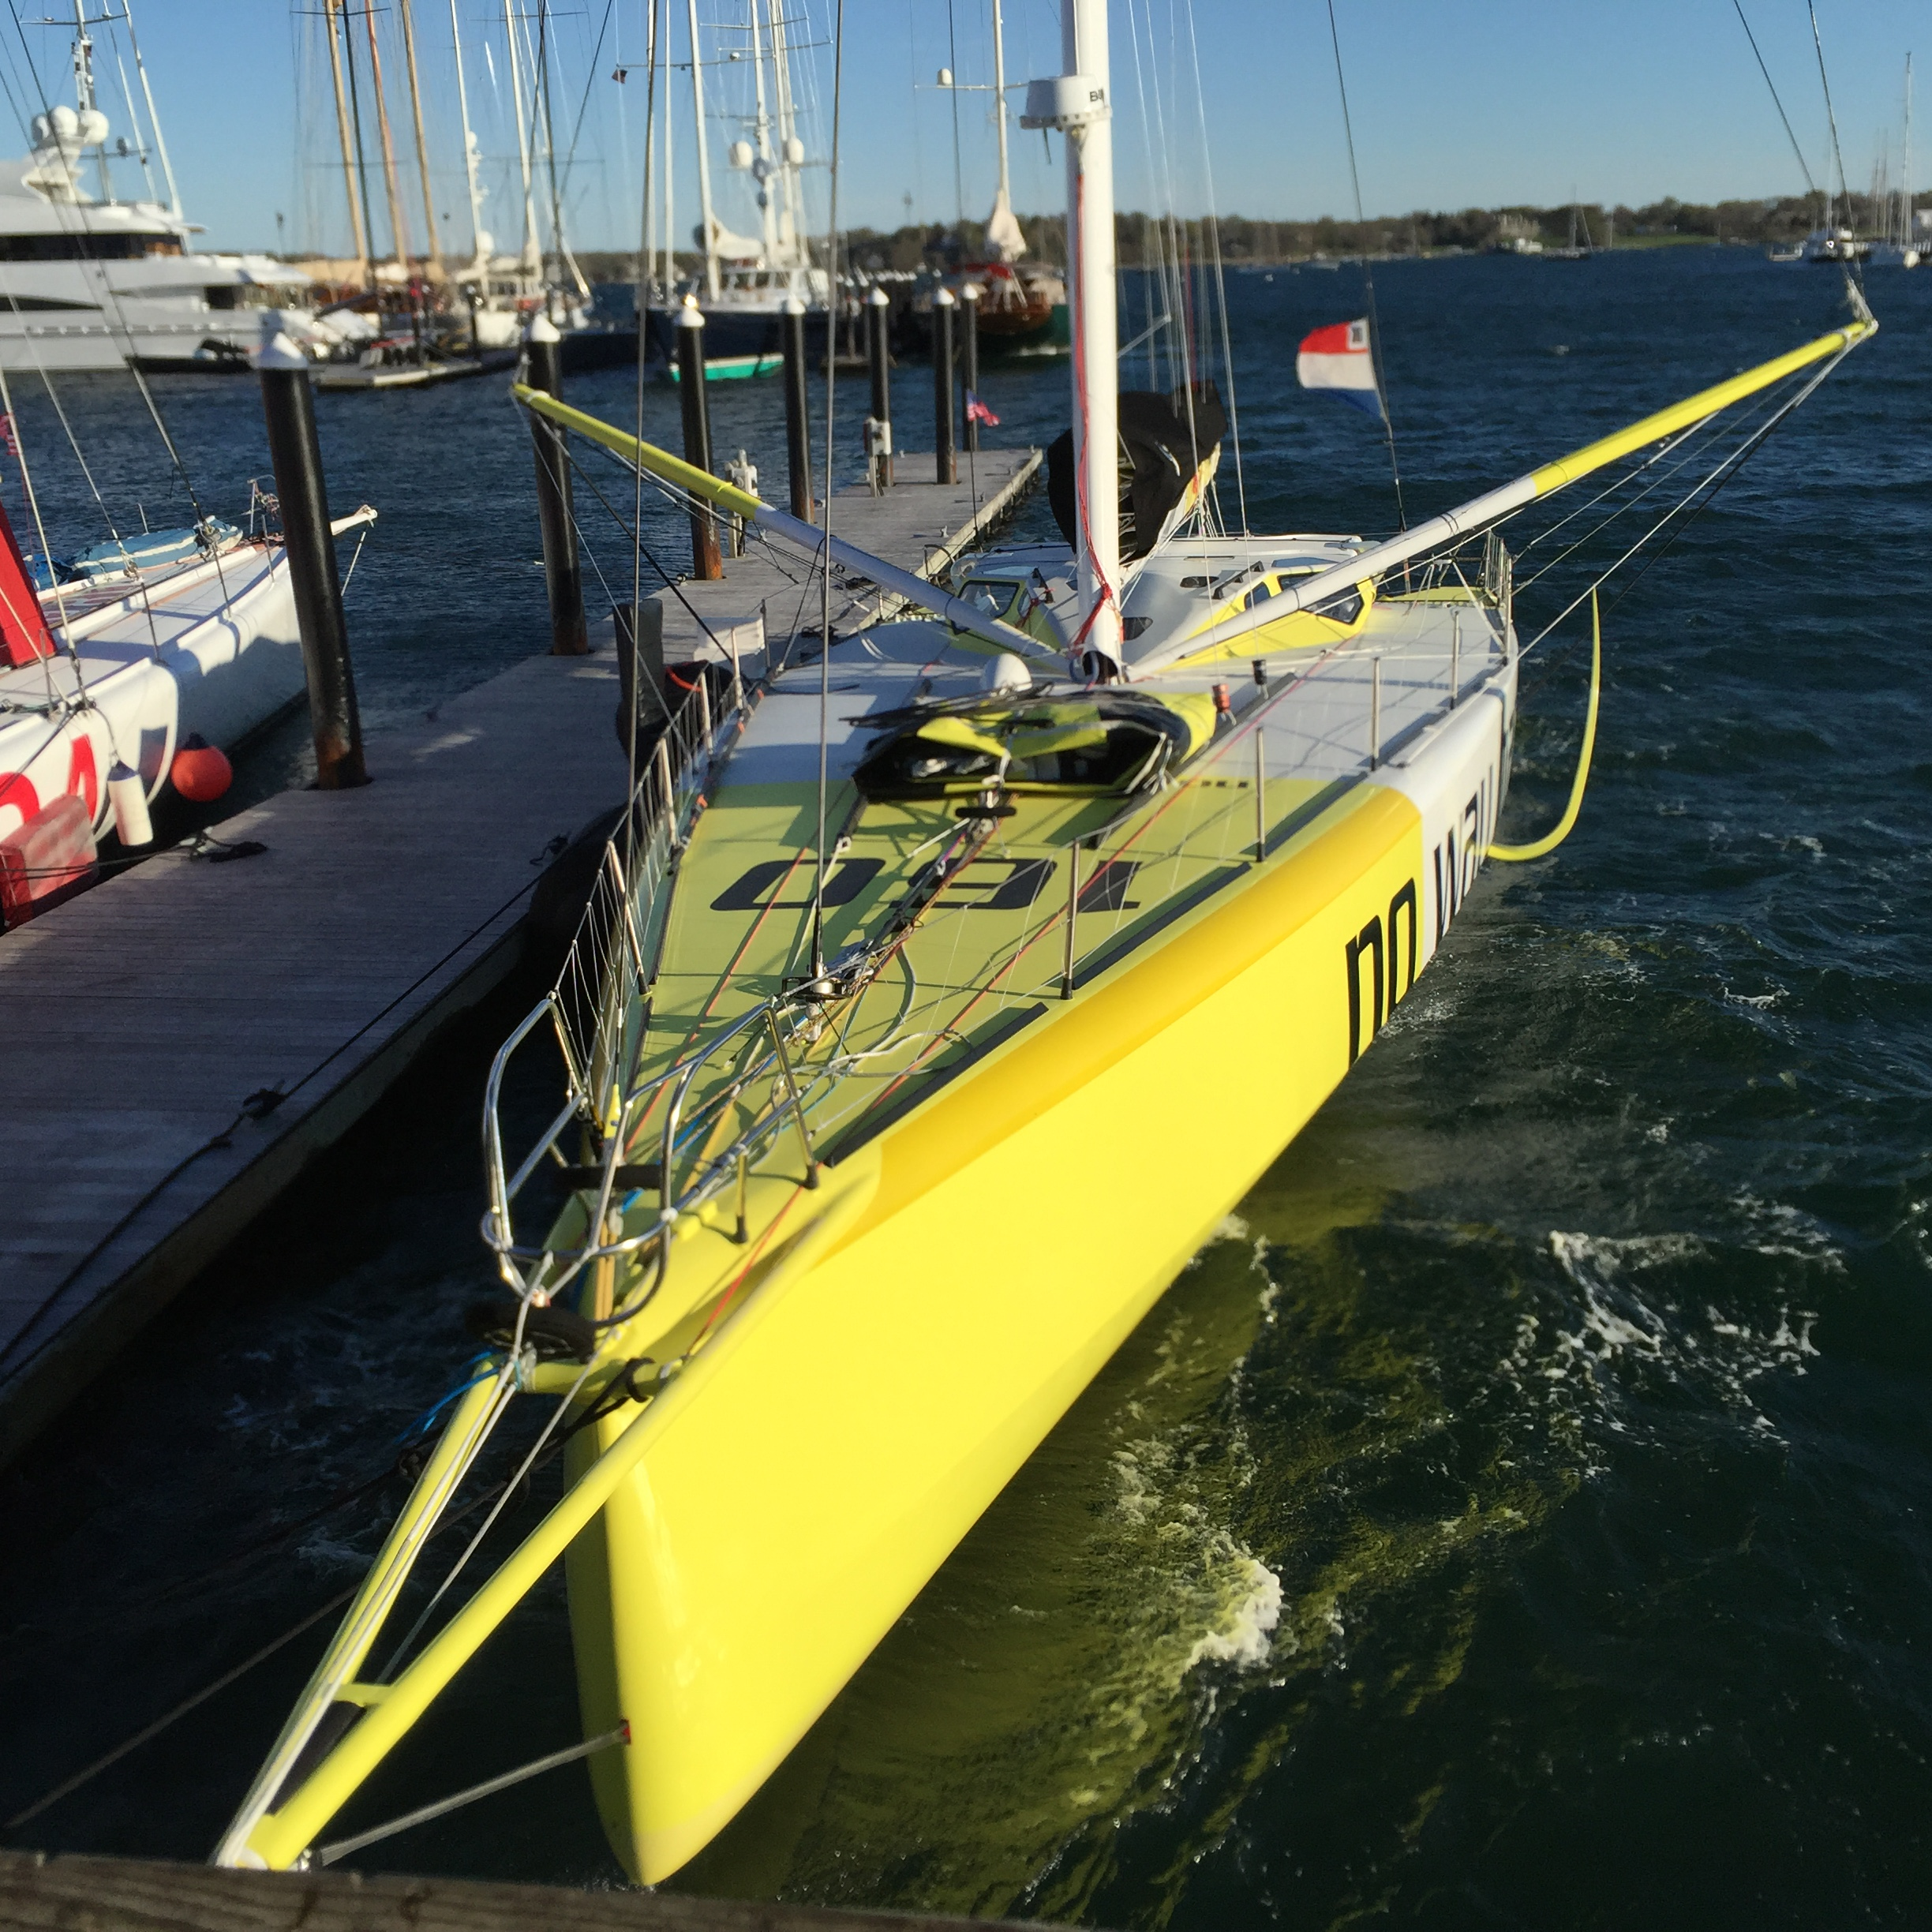 This latest generation IMOCA 60 has the now common deck spreaders and wing shection mast. The spreaders are to get a wide shroud base, to minize the compression on the spar so it can be a but lighter. Many many Excel spreadsheet Cells were sacrificed in figuring out the cost benefit of this arrangemebt.